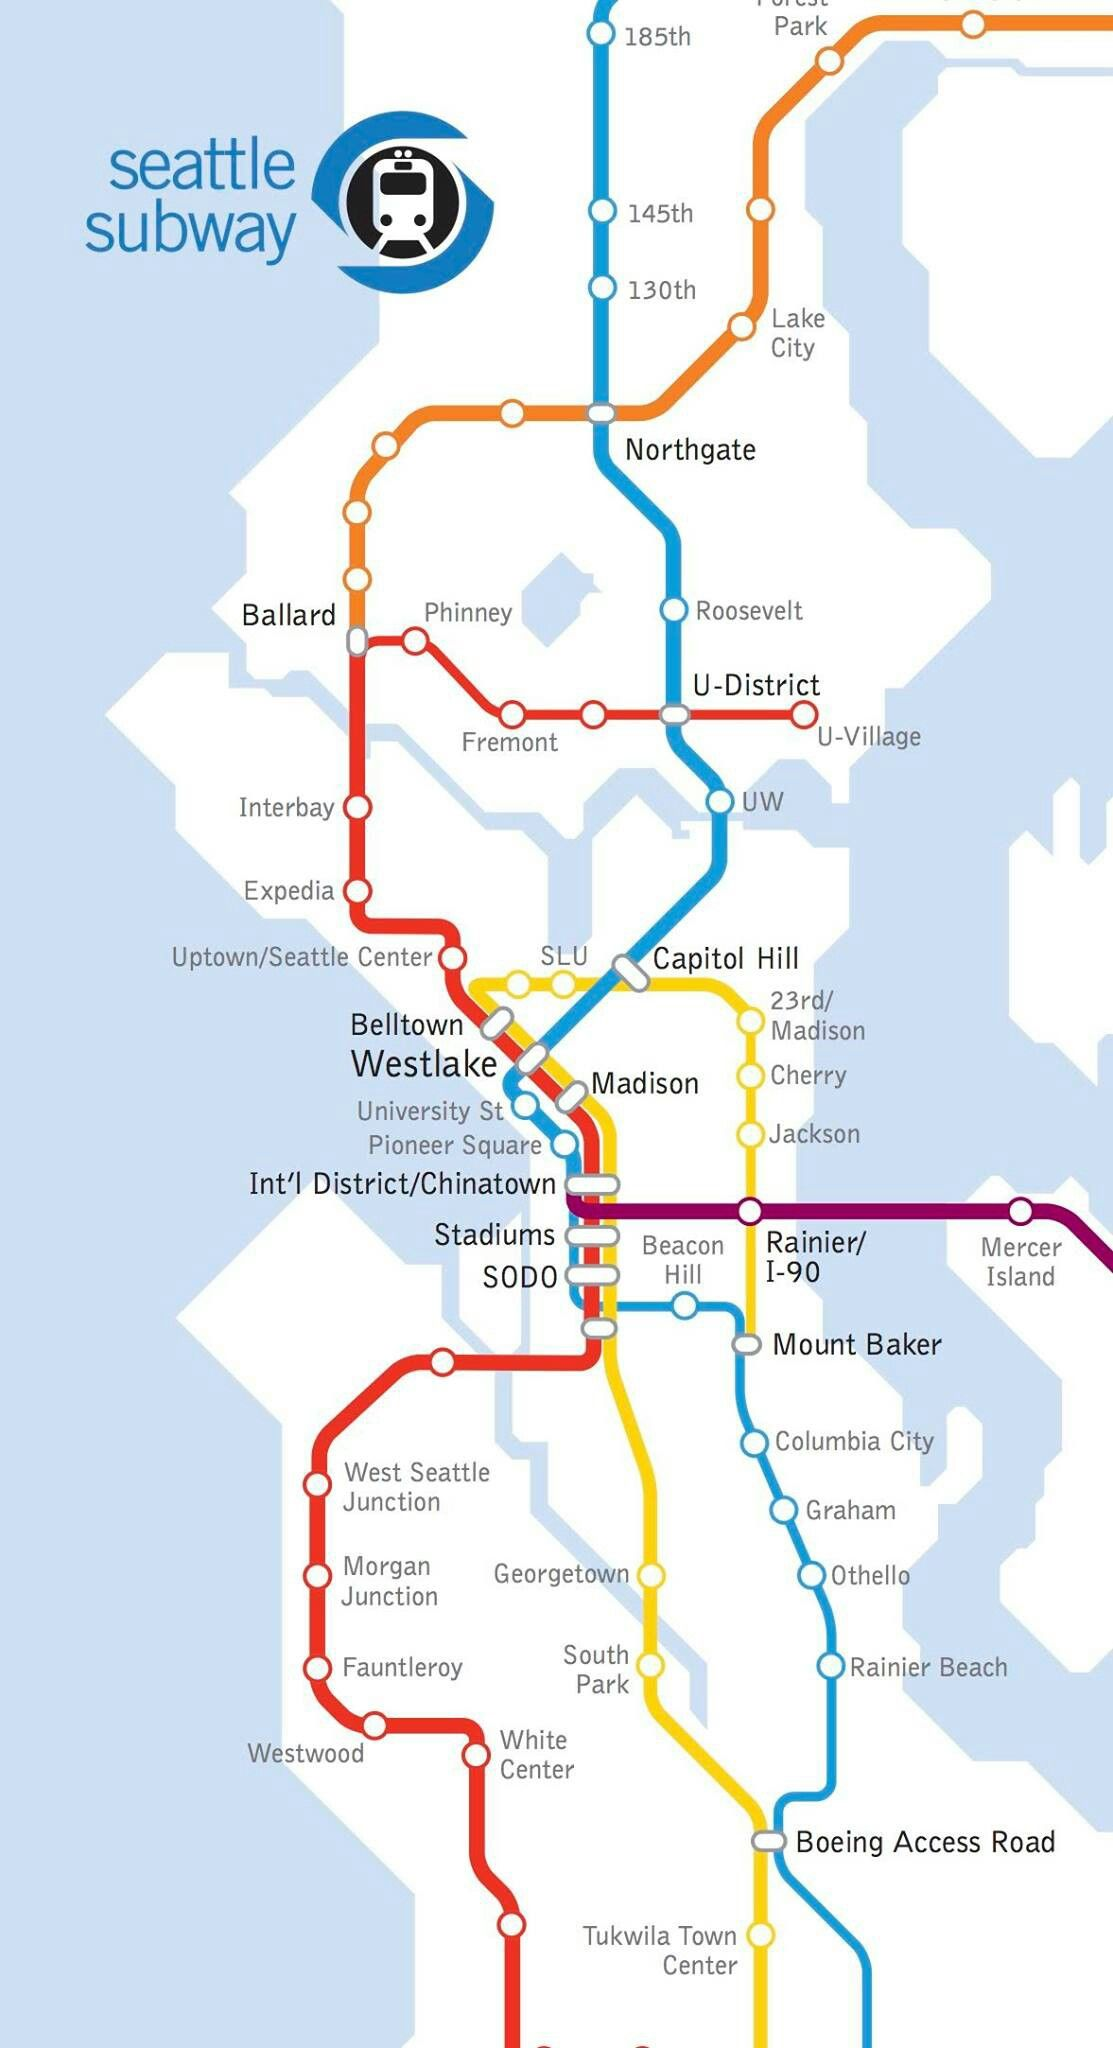 Seattle S Light Link Rail System In The Future Seattle Metro Area